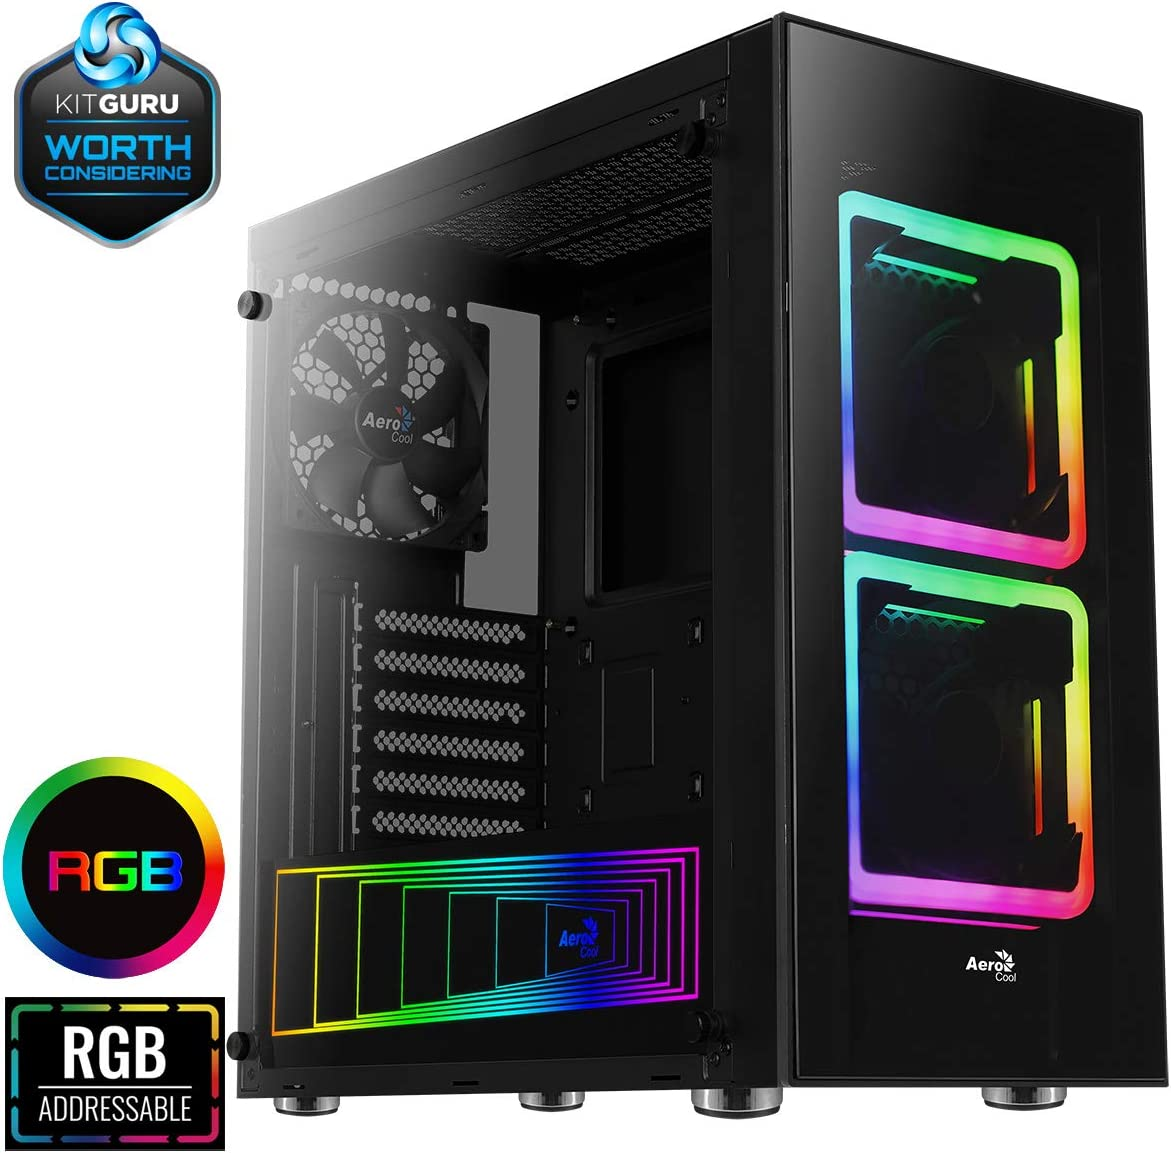 Aerocool Tor Mid-Tower RGB PC Gaming Case, ATX, Addressable RGB Plate, 10-Port Fan Hub with PWM, 2 x 140mm Dual Square Ring RGB LED Fans Included, Build Your Legacy | Black